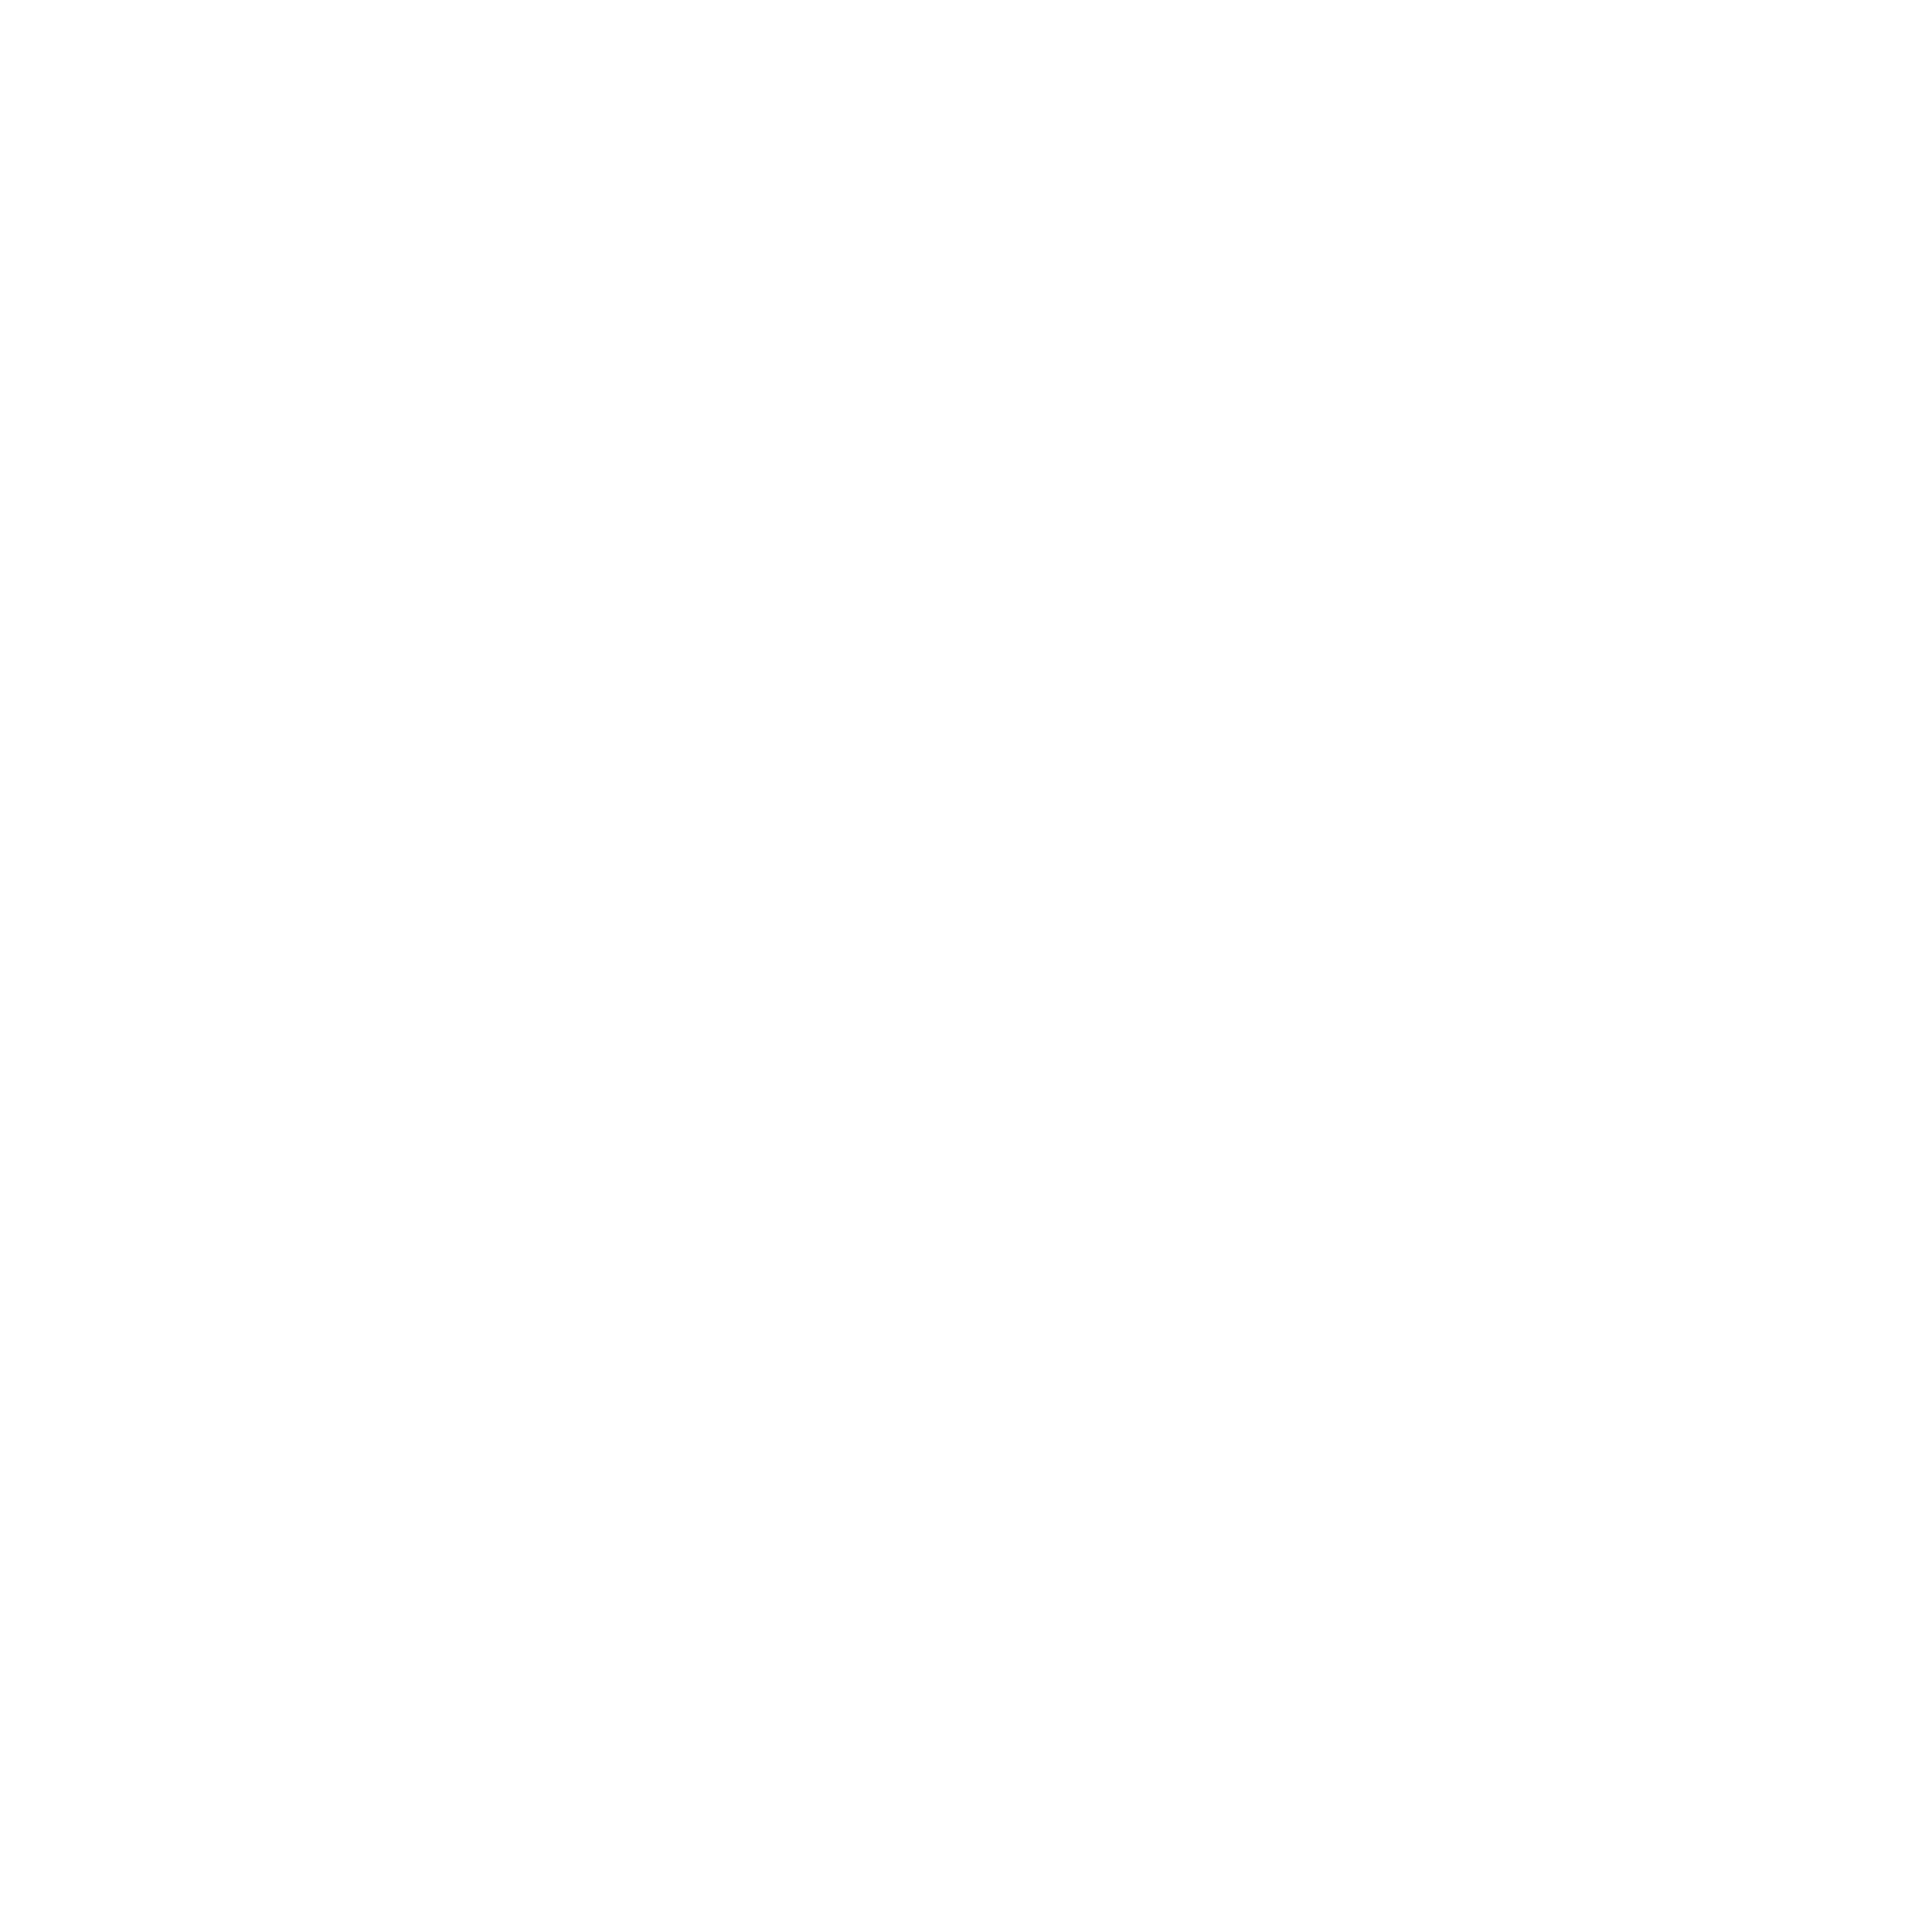 Forward you